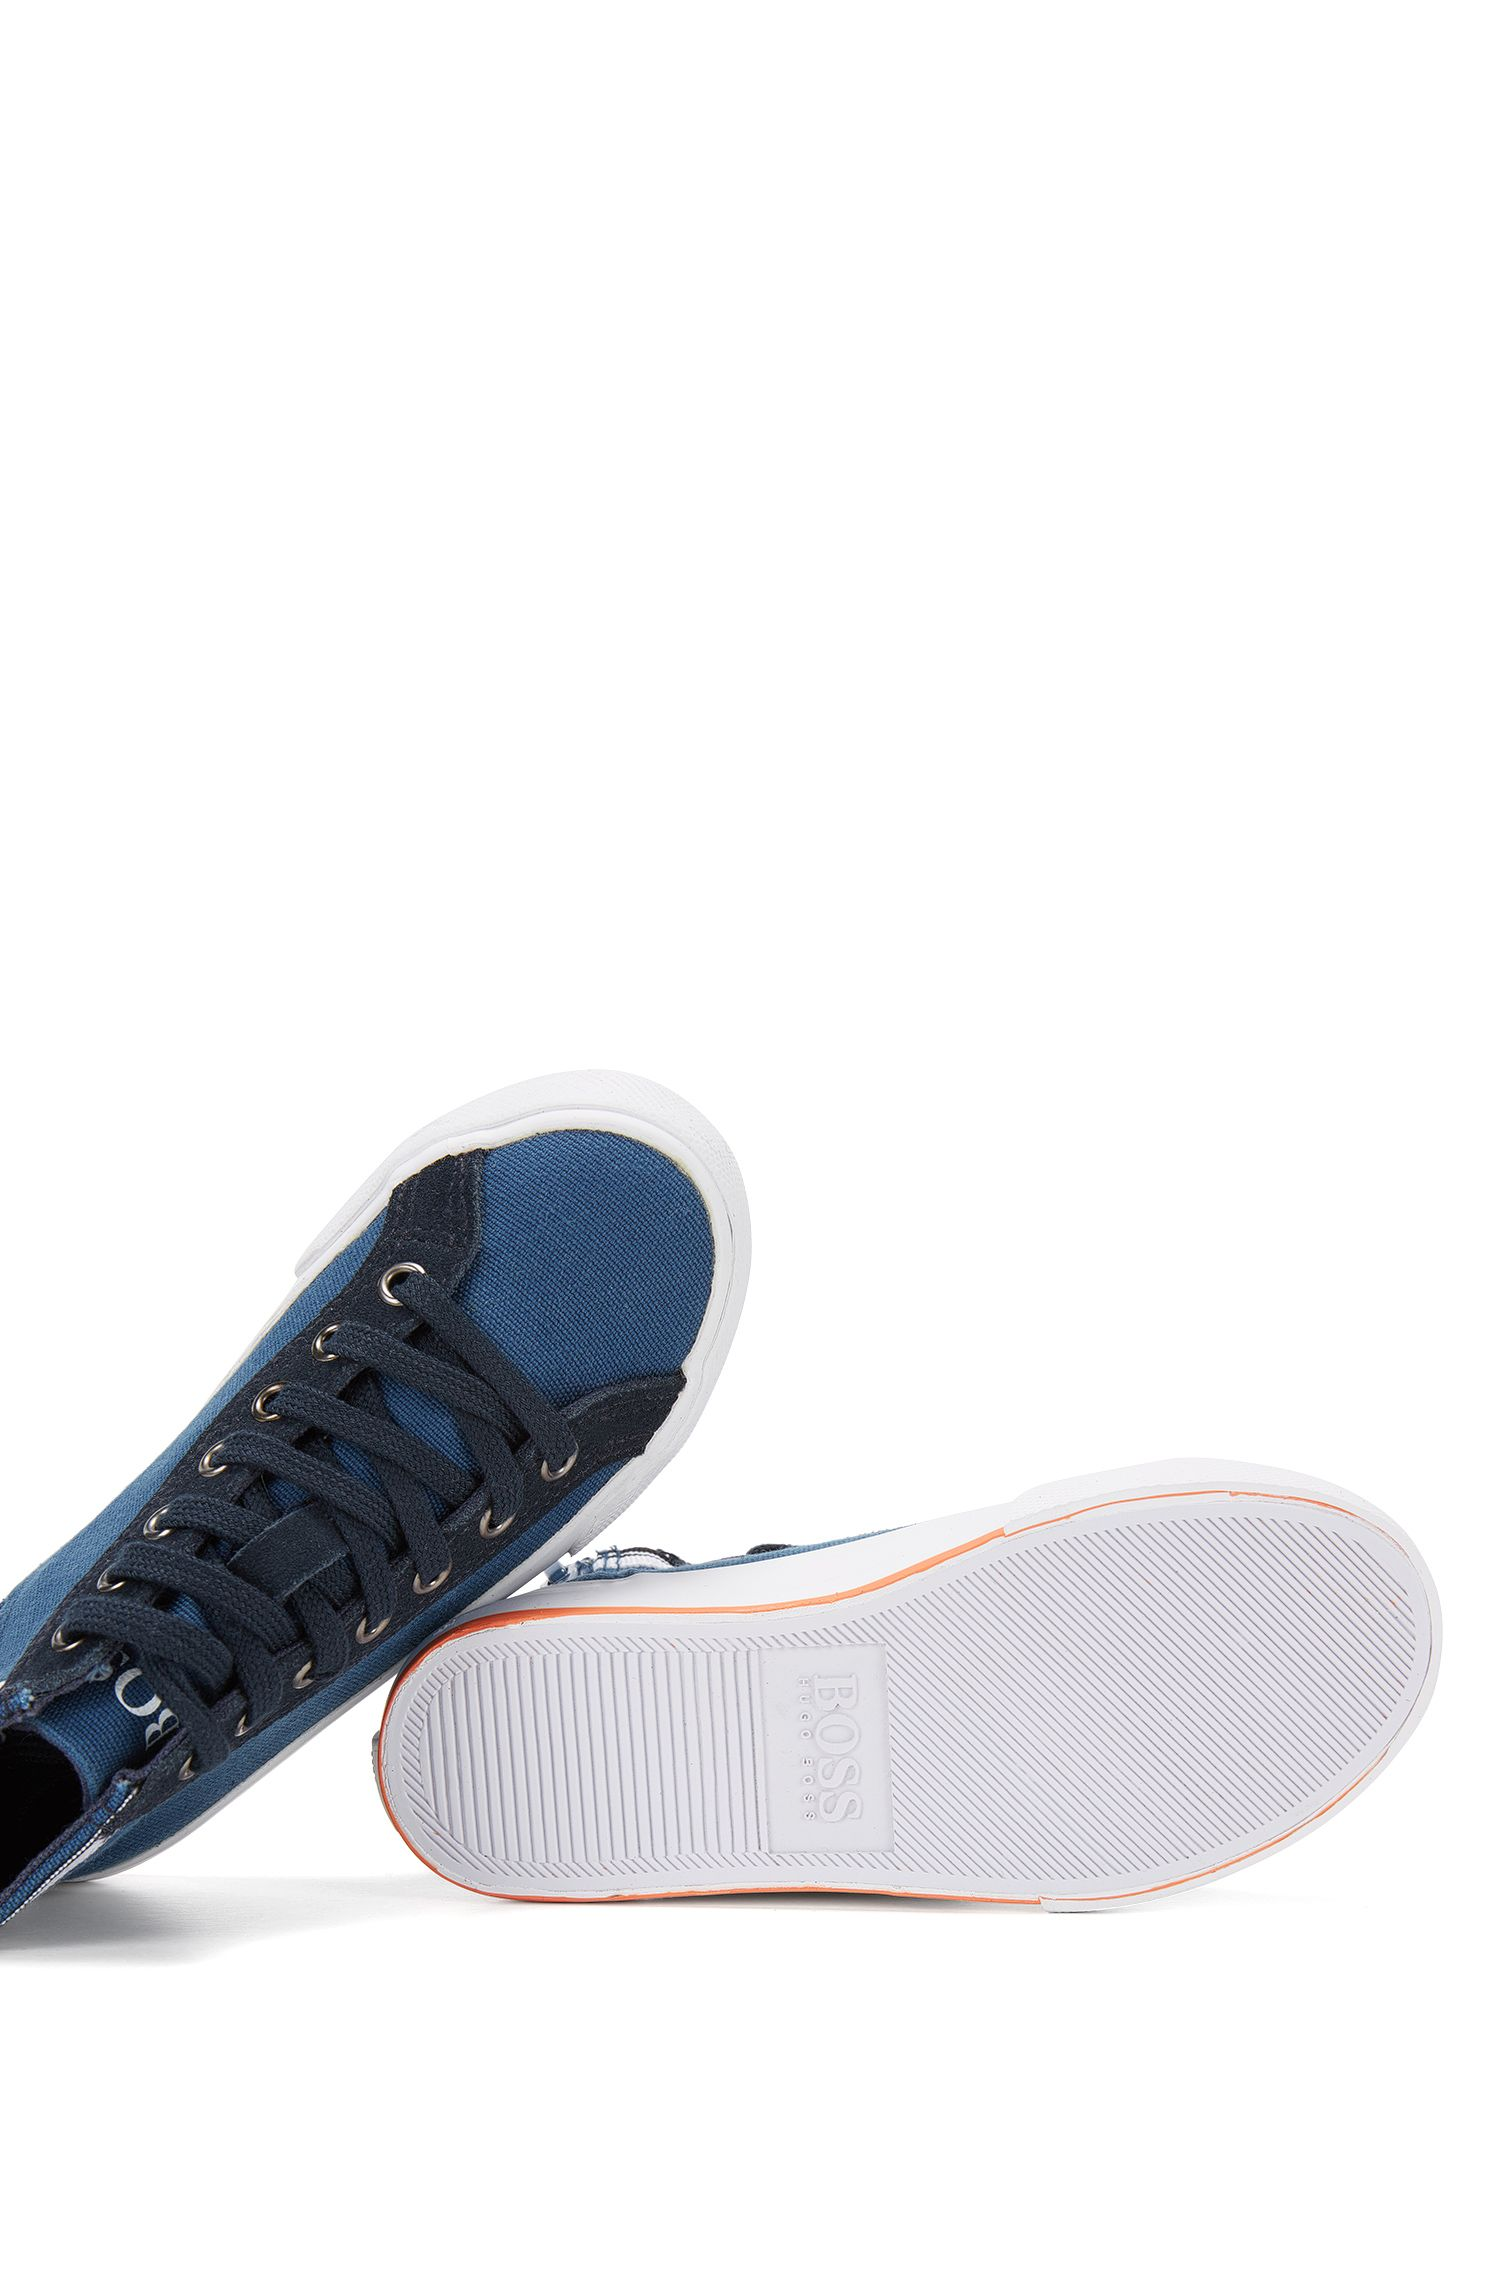 Kids' trainers in cotton and leather trim